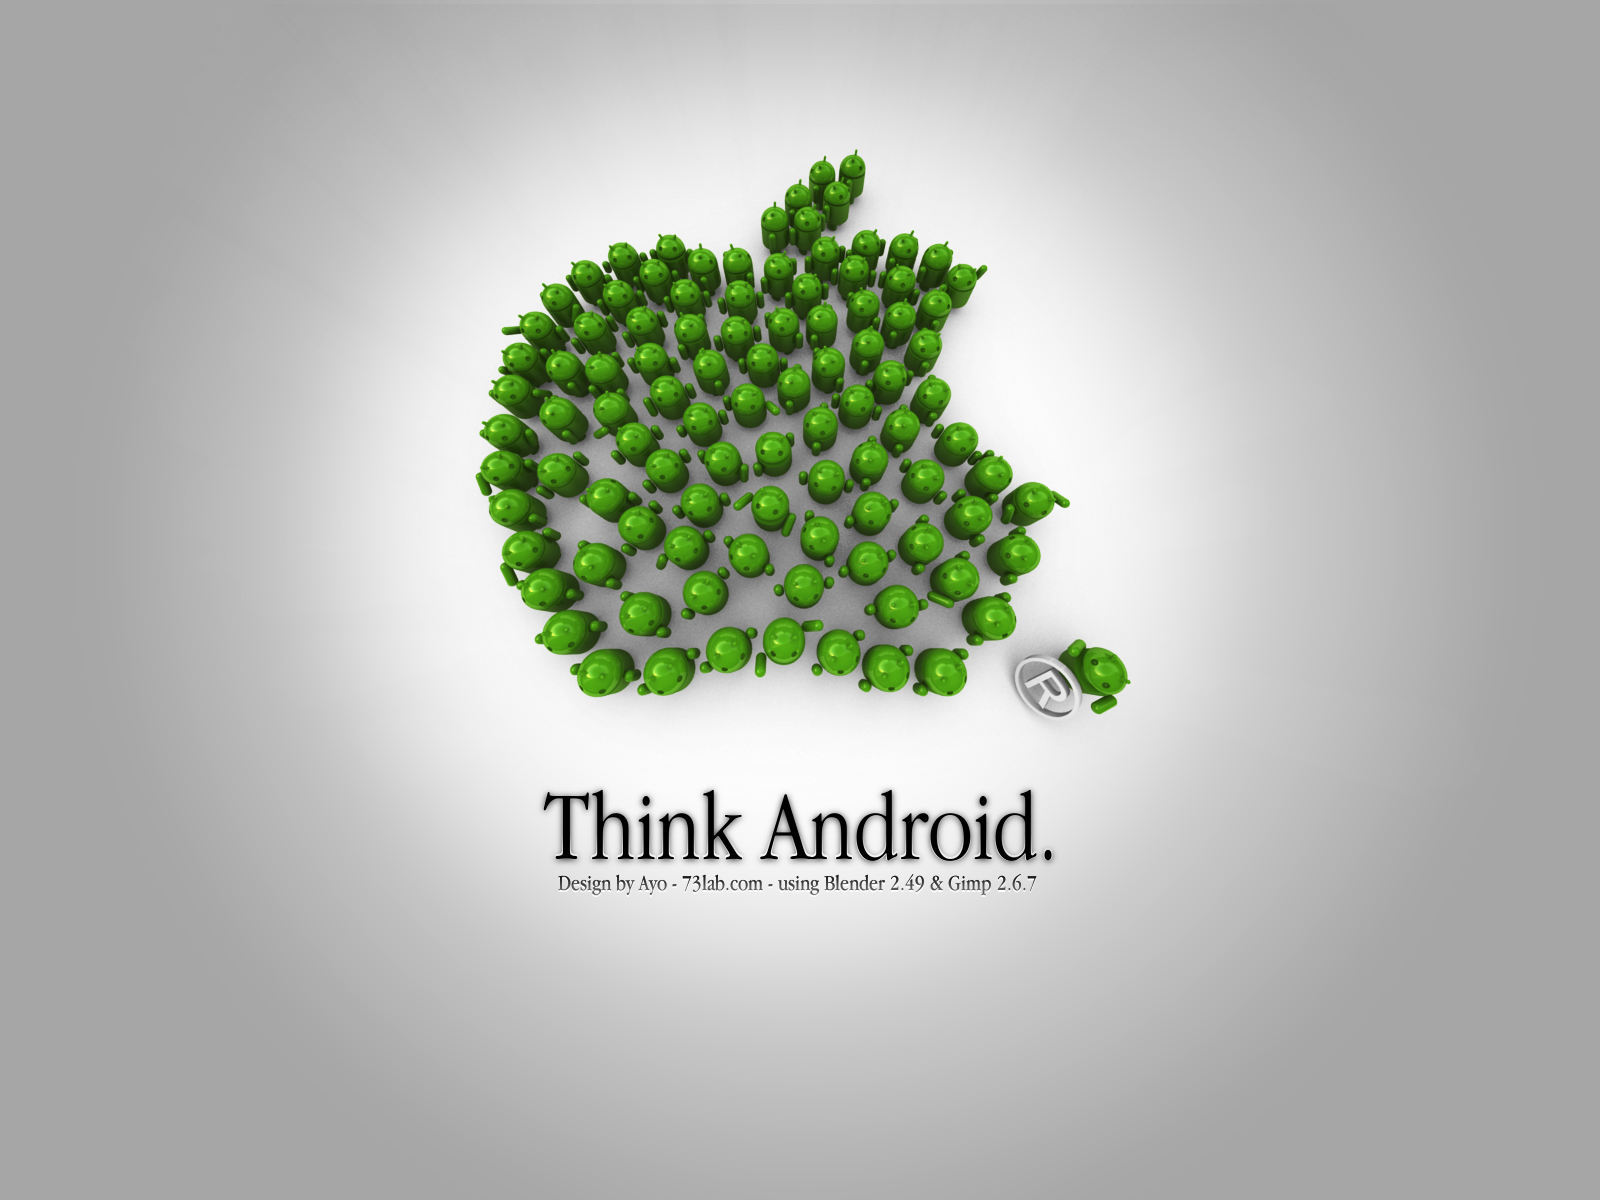 android logo wallpaper fire android pinterest android fire and logos